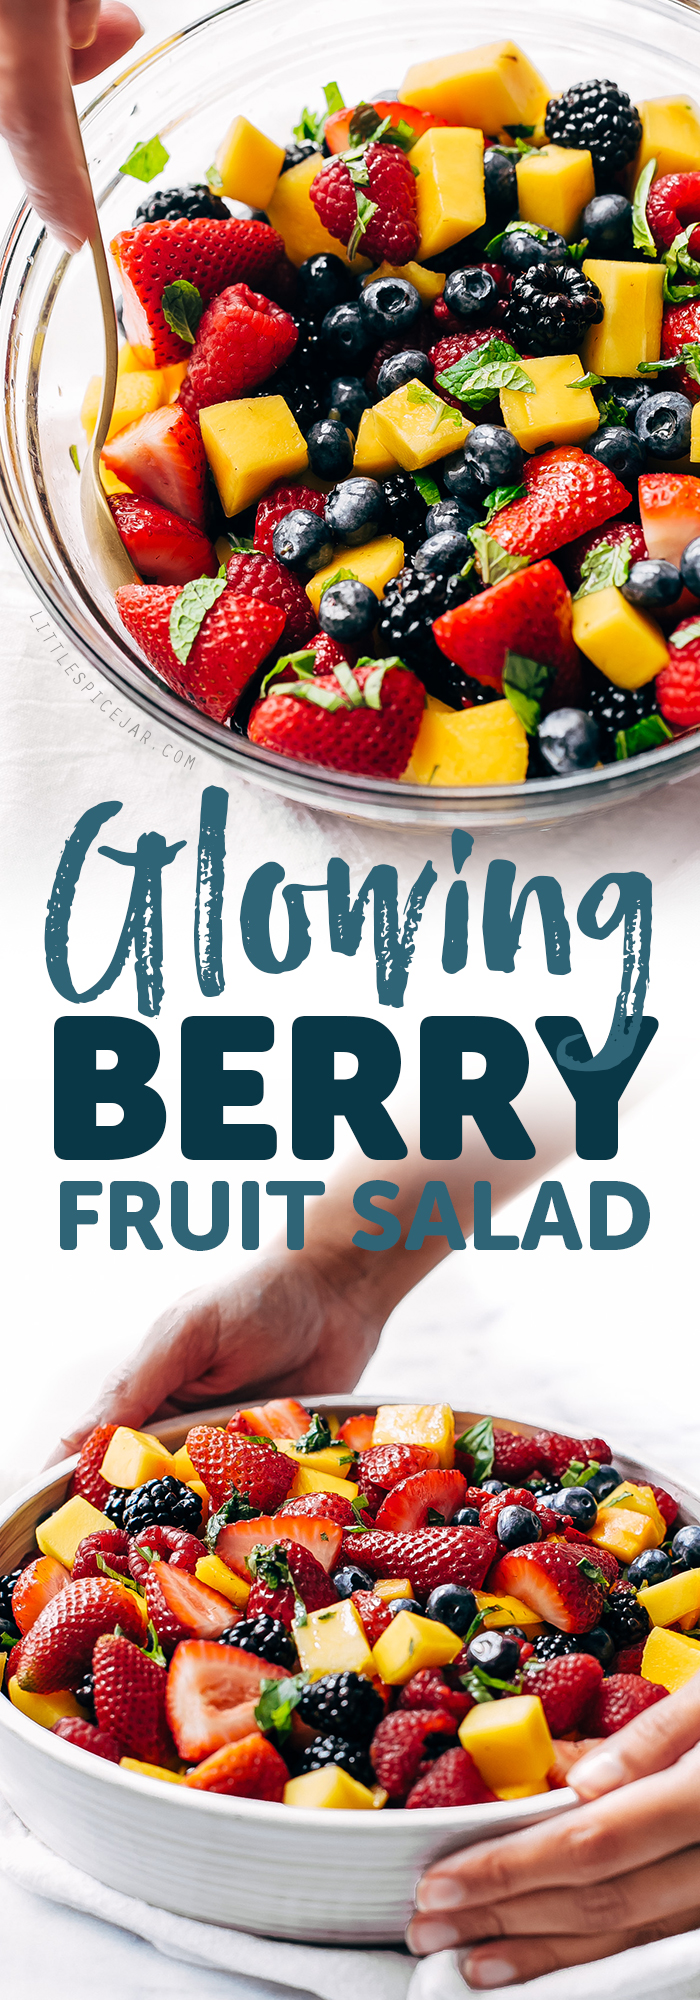 Glowing Berry Fruit Salad - an easy fruit salad that you can bring to picnics, barbecues, brunches and so much more! #fruitsalad #berrysalad #berryfruitsalad #picnic #salad | Littlespicejar.com